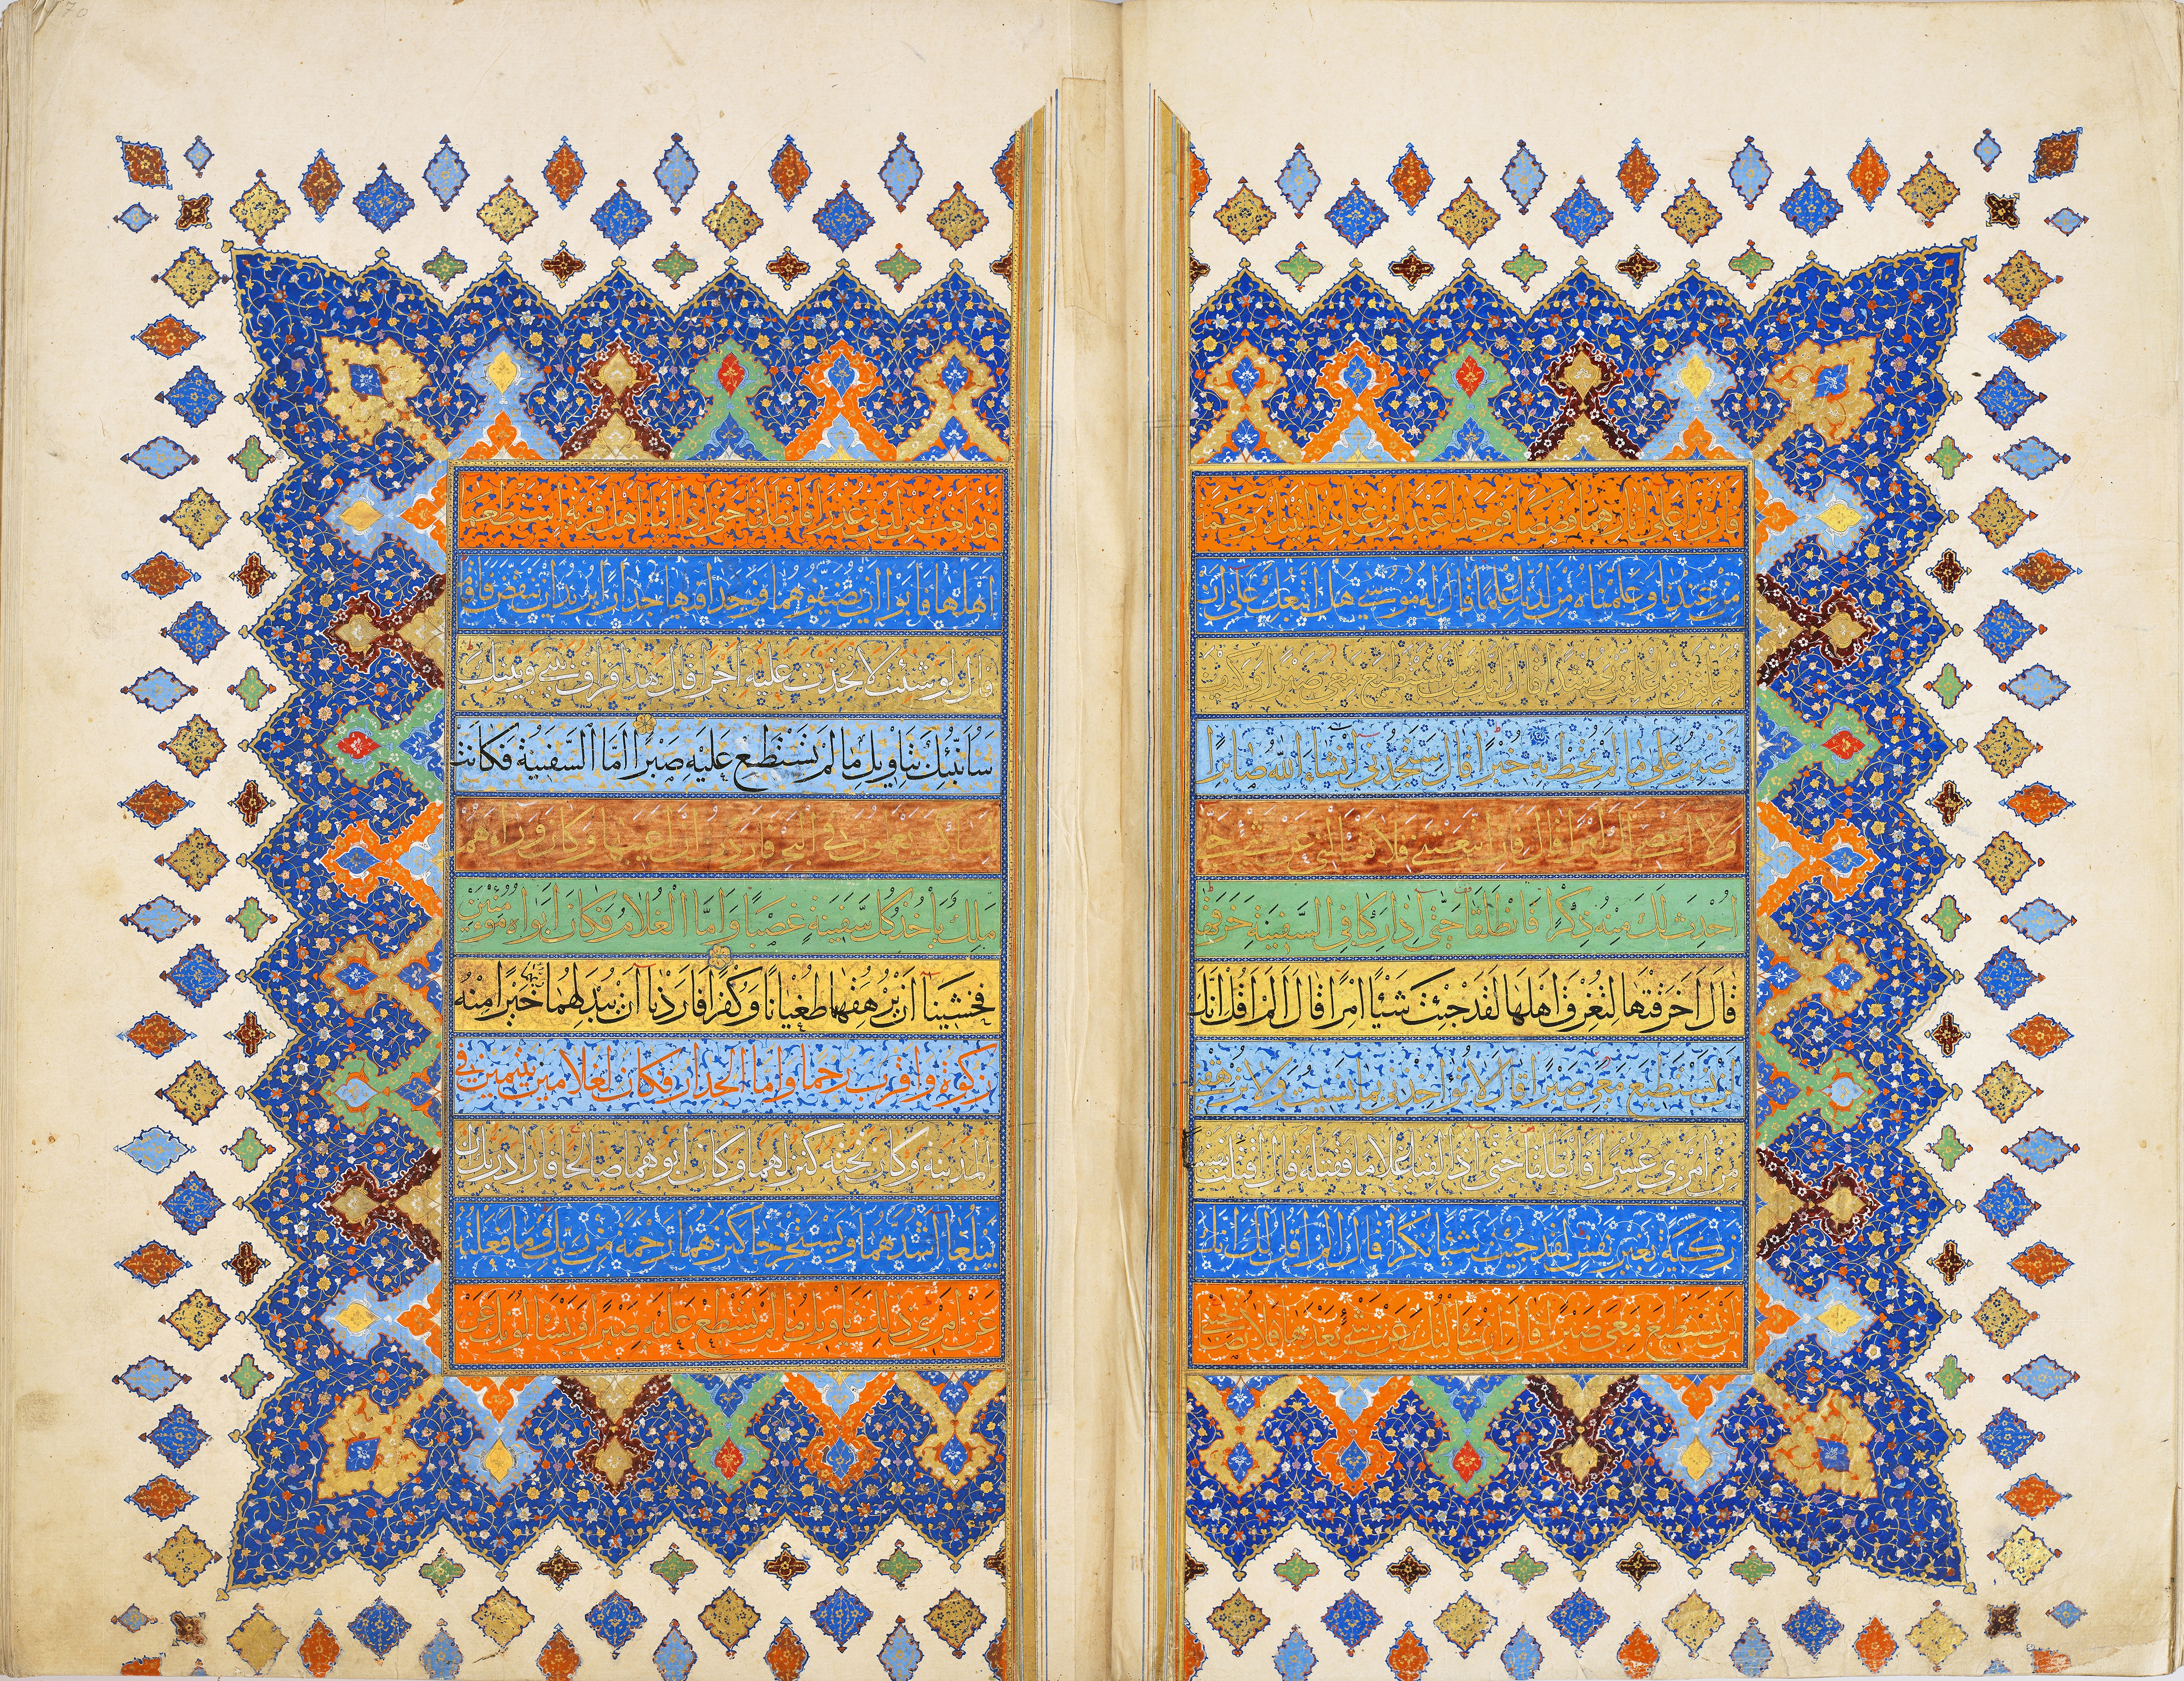 This Qur'an was copied by calligrapher Abd al-Qadir ibn Abd al-Wahhab around 1580 and is on loan from the Museum of Turkish and Islamic Arts in Istanbul.